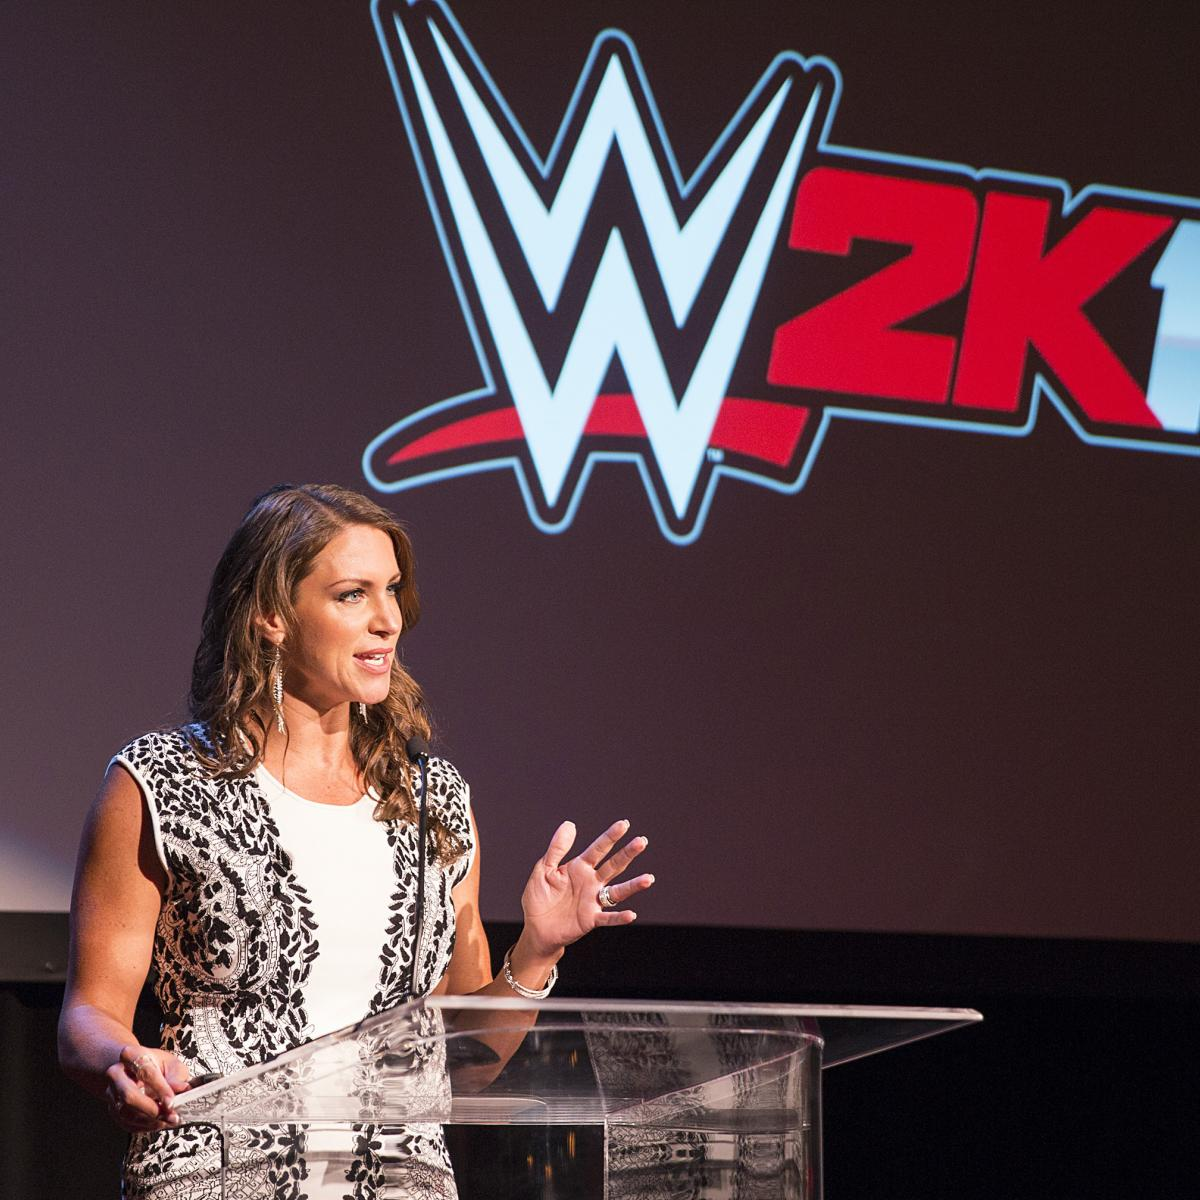 WWE 2K15: Expert Reviews, DLC Details, Full Roster And